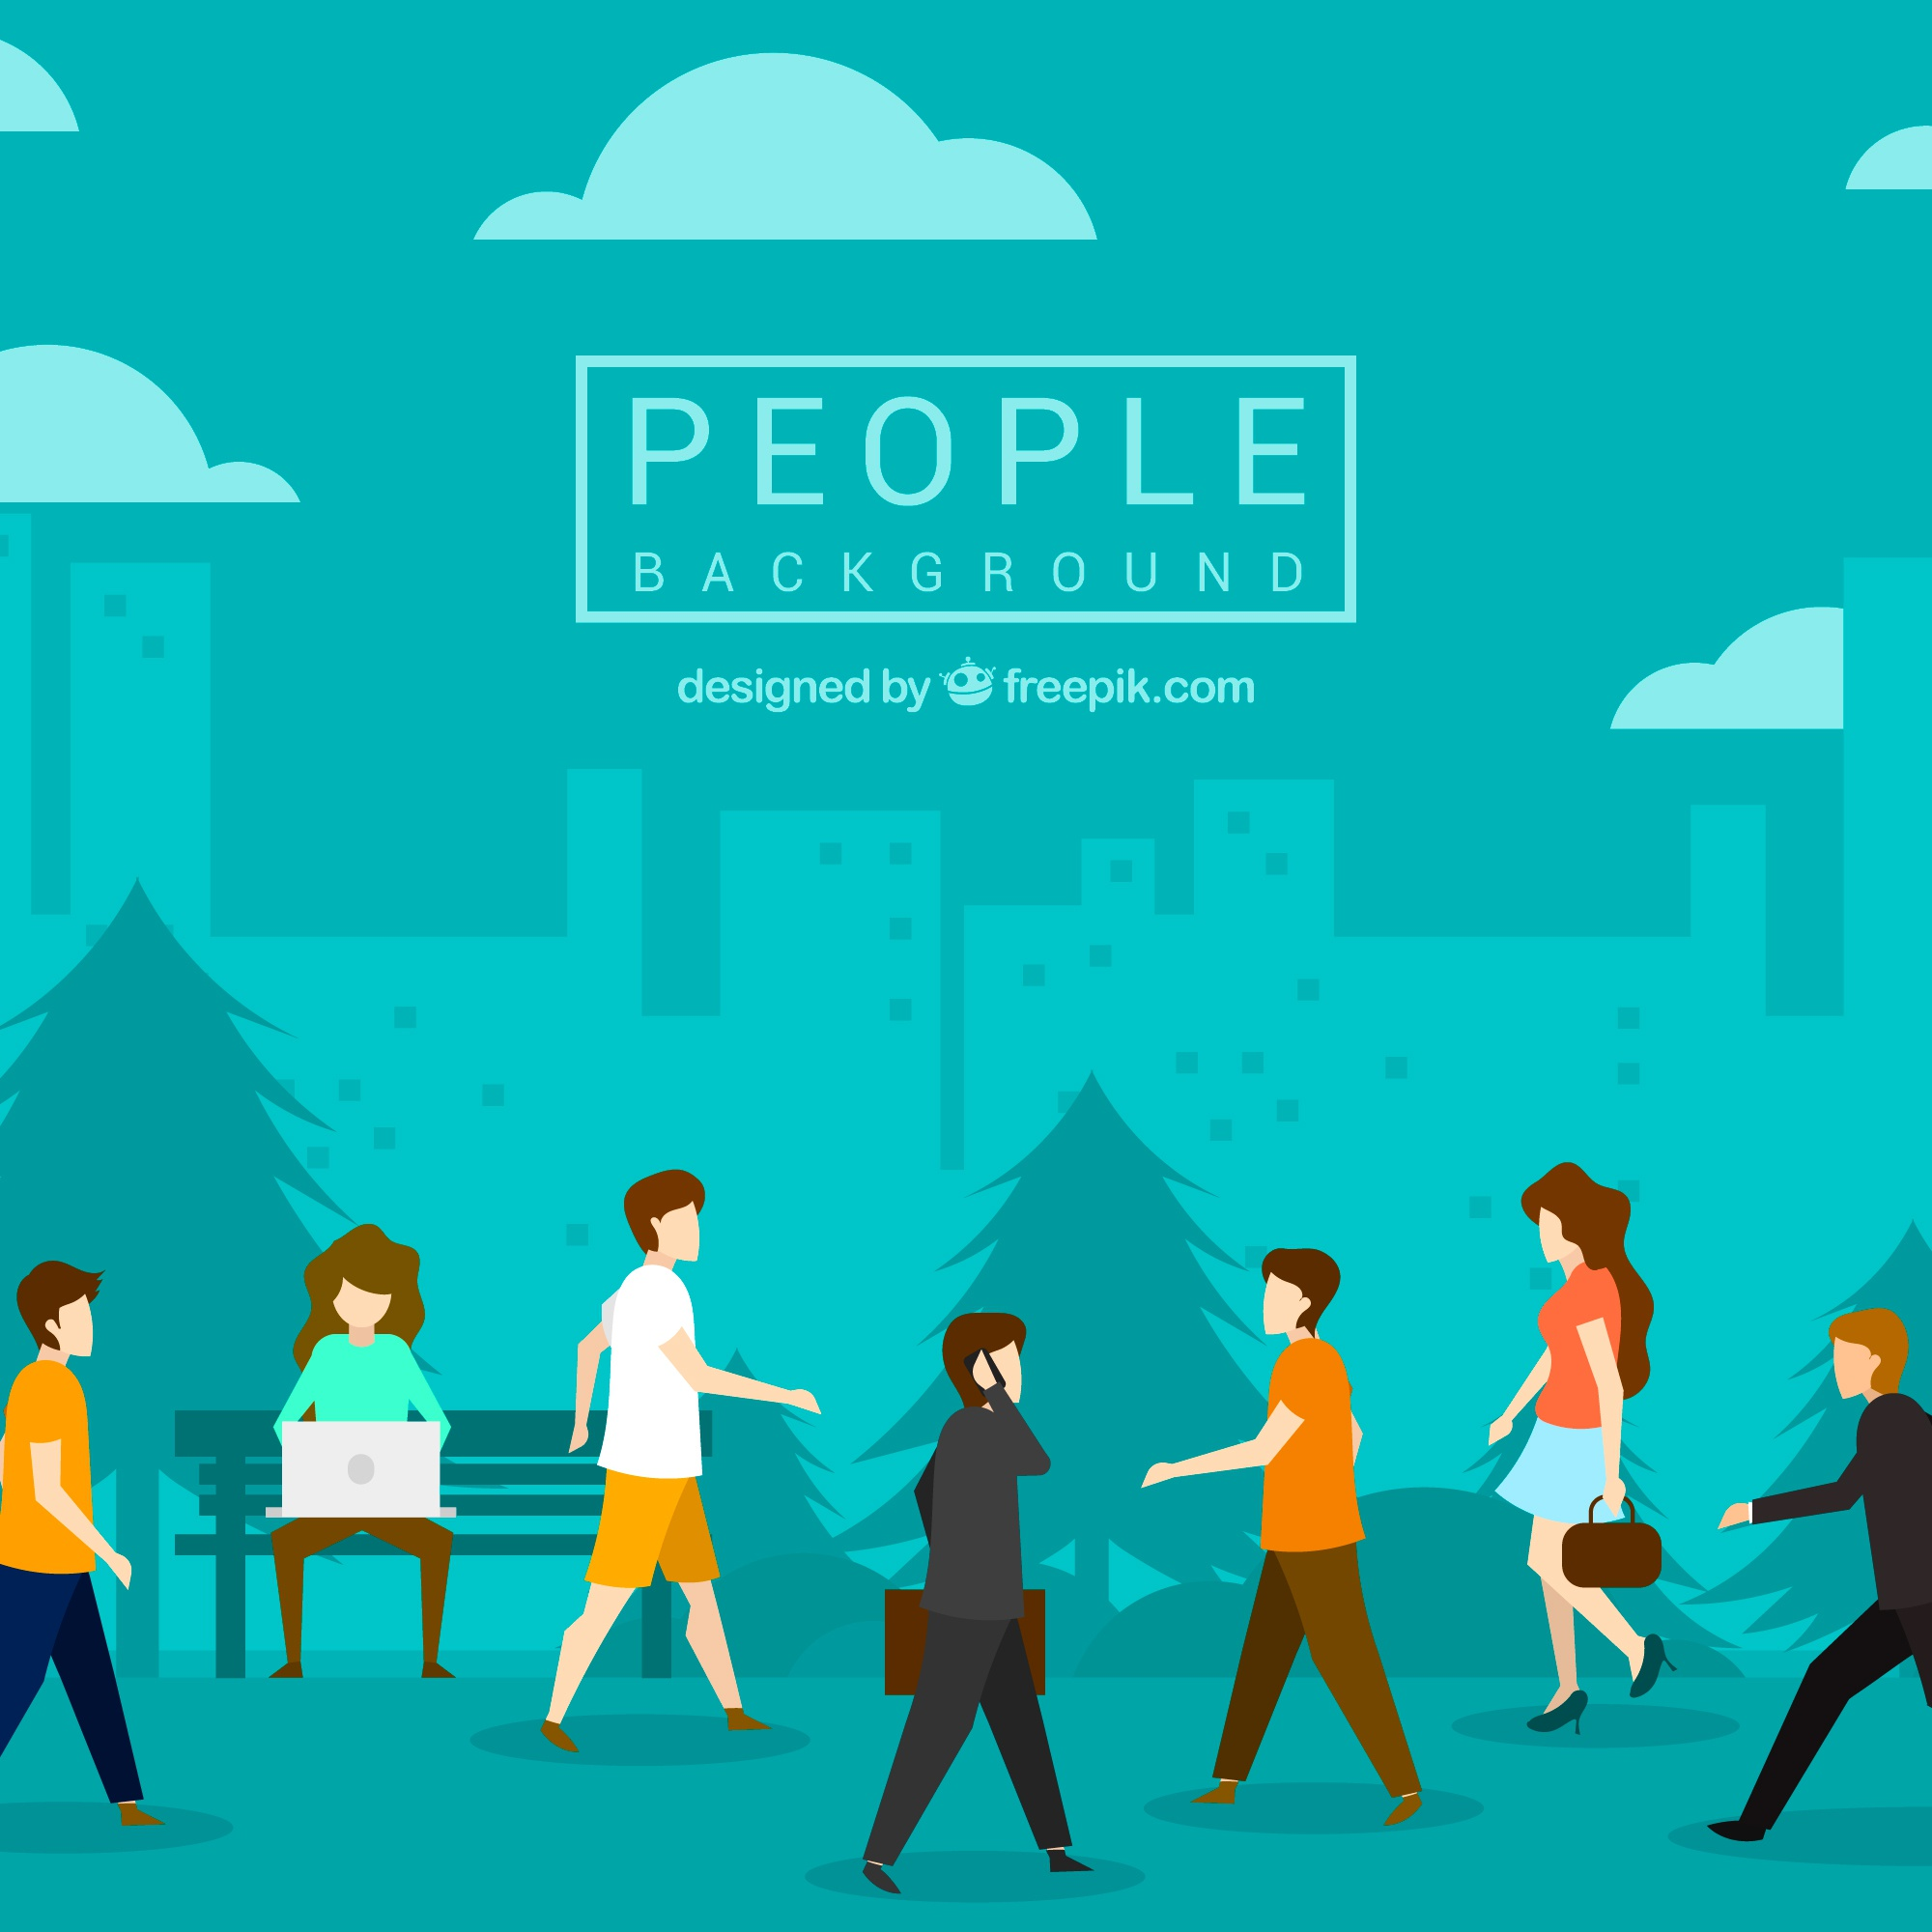 Background of people walking in flat design